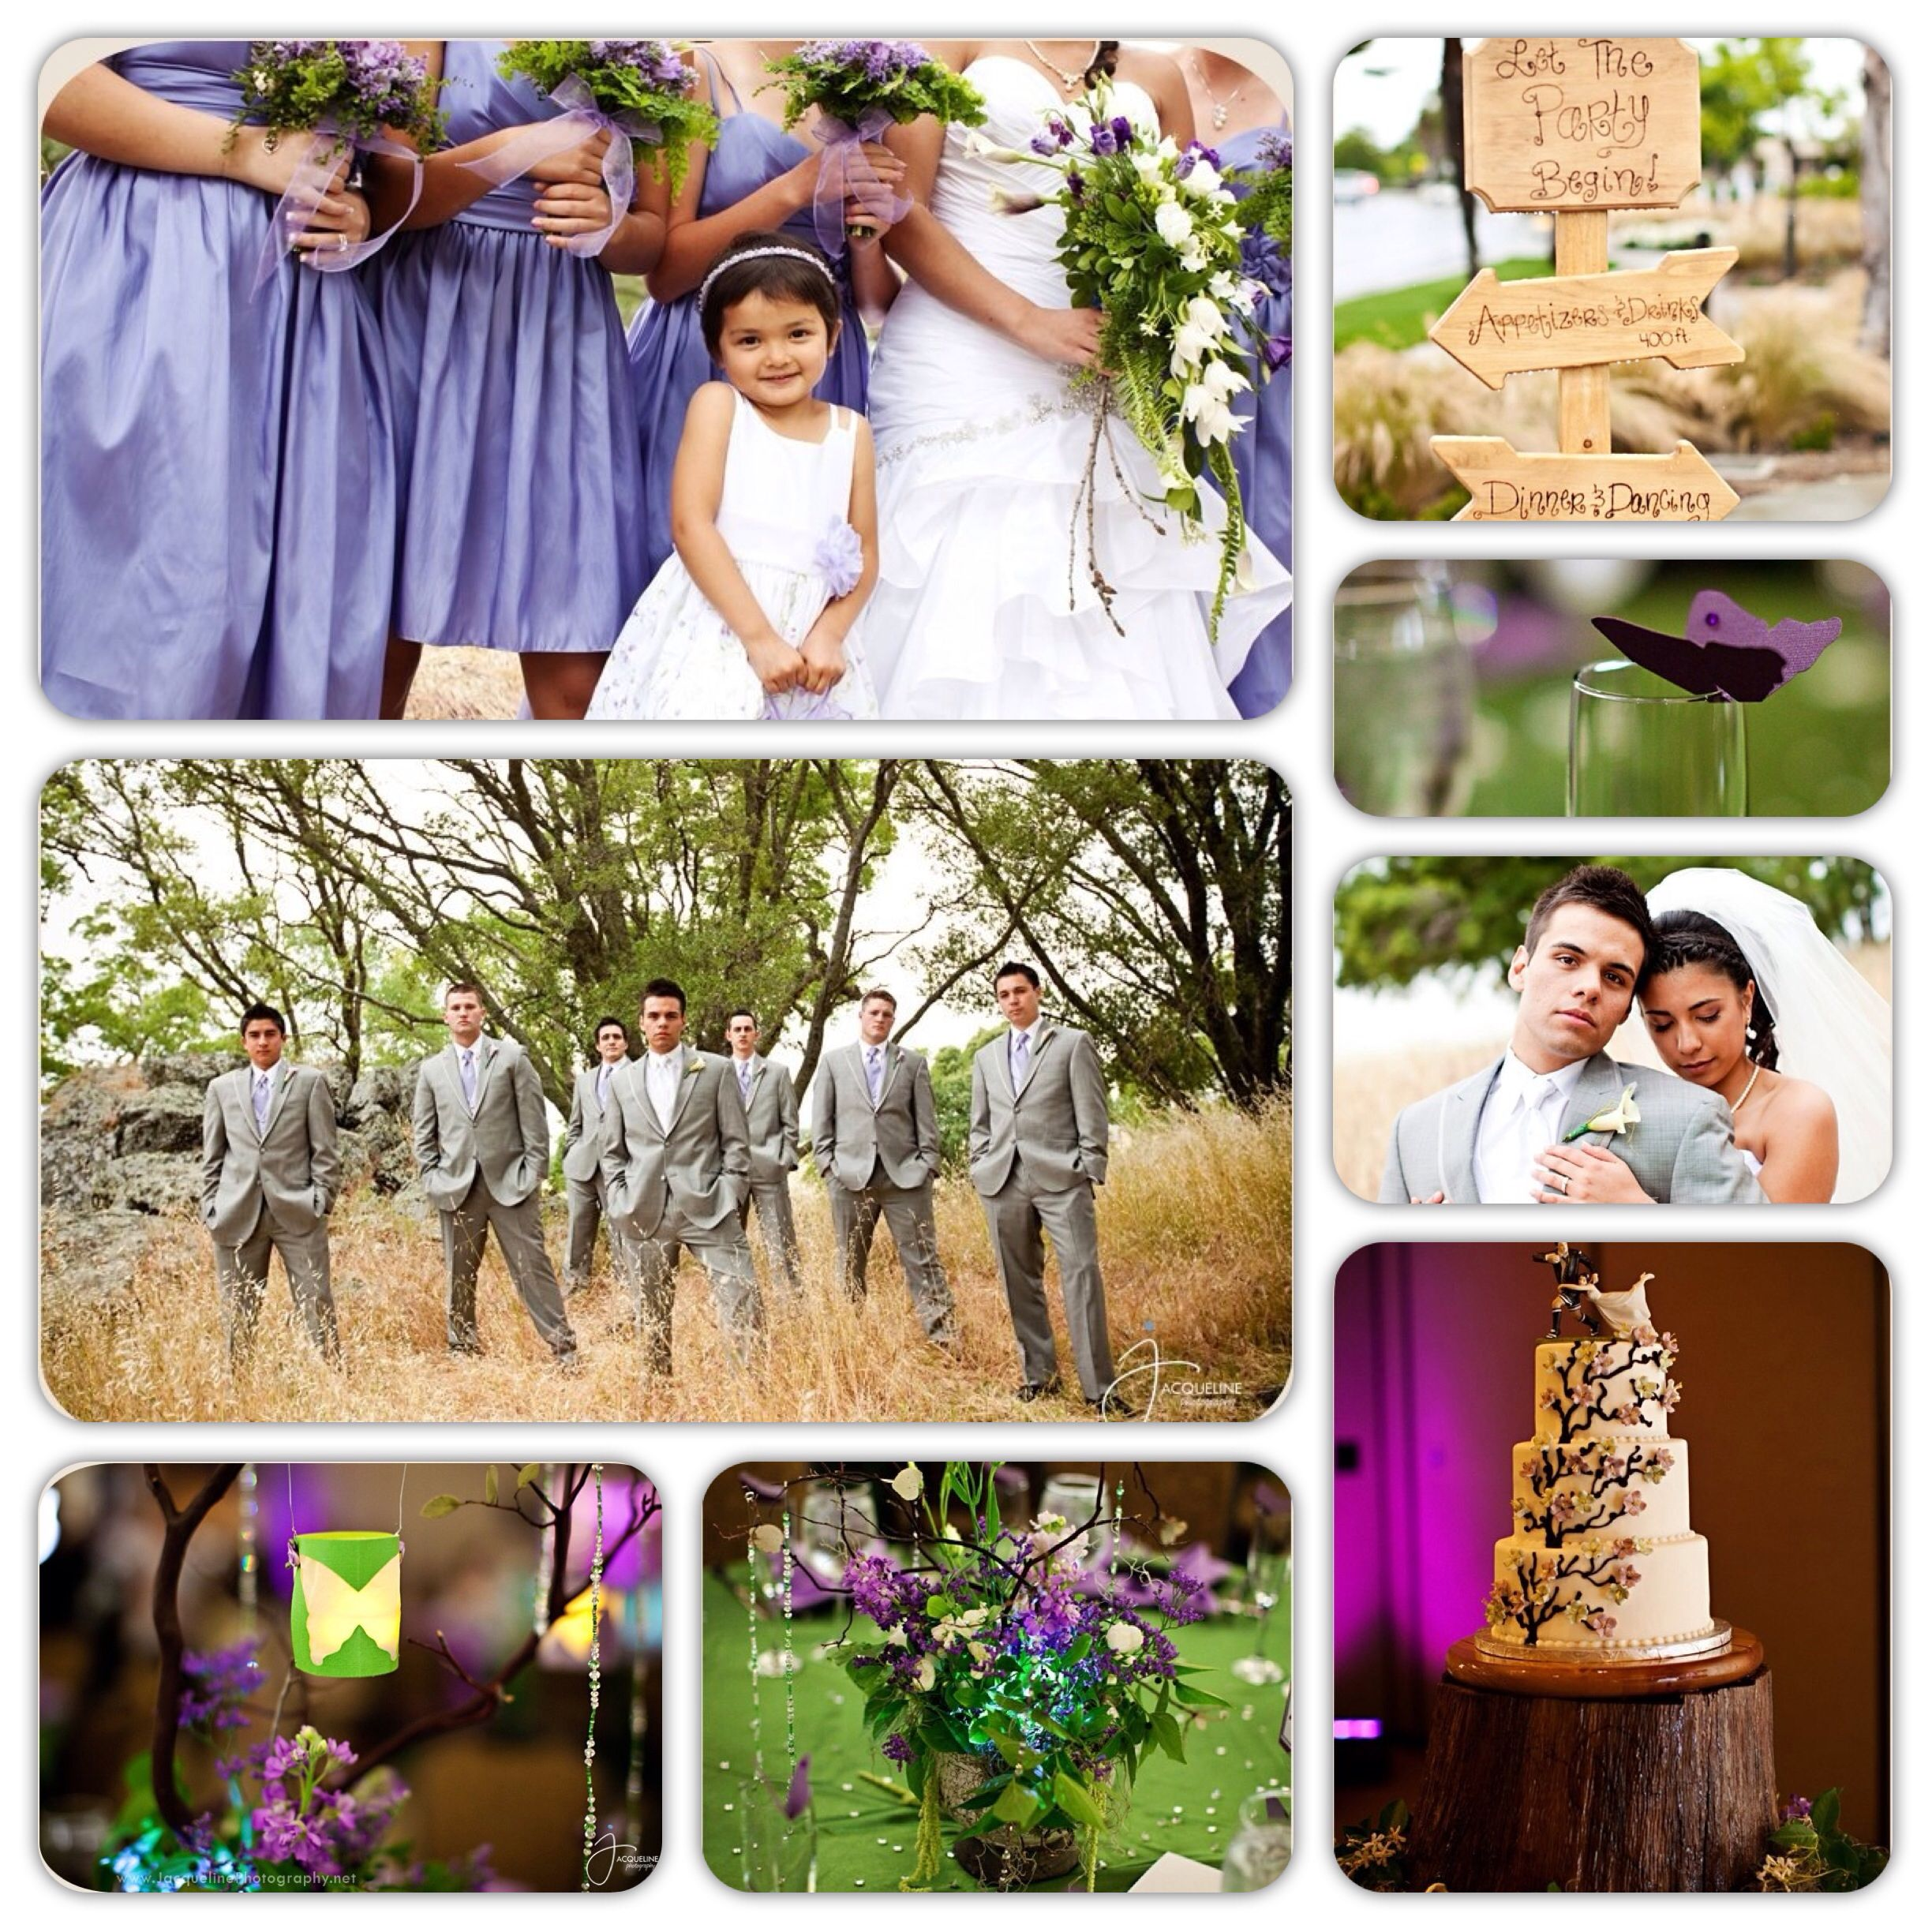 Purple Wedding Ideas With Pretty Details: Purple And Green Wedding. Enchanted Forest Theme. DIY